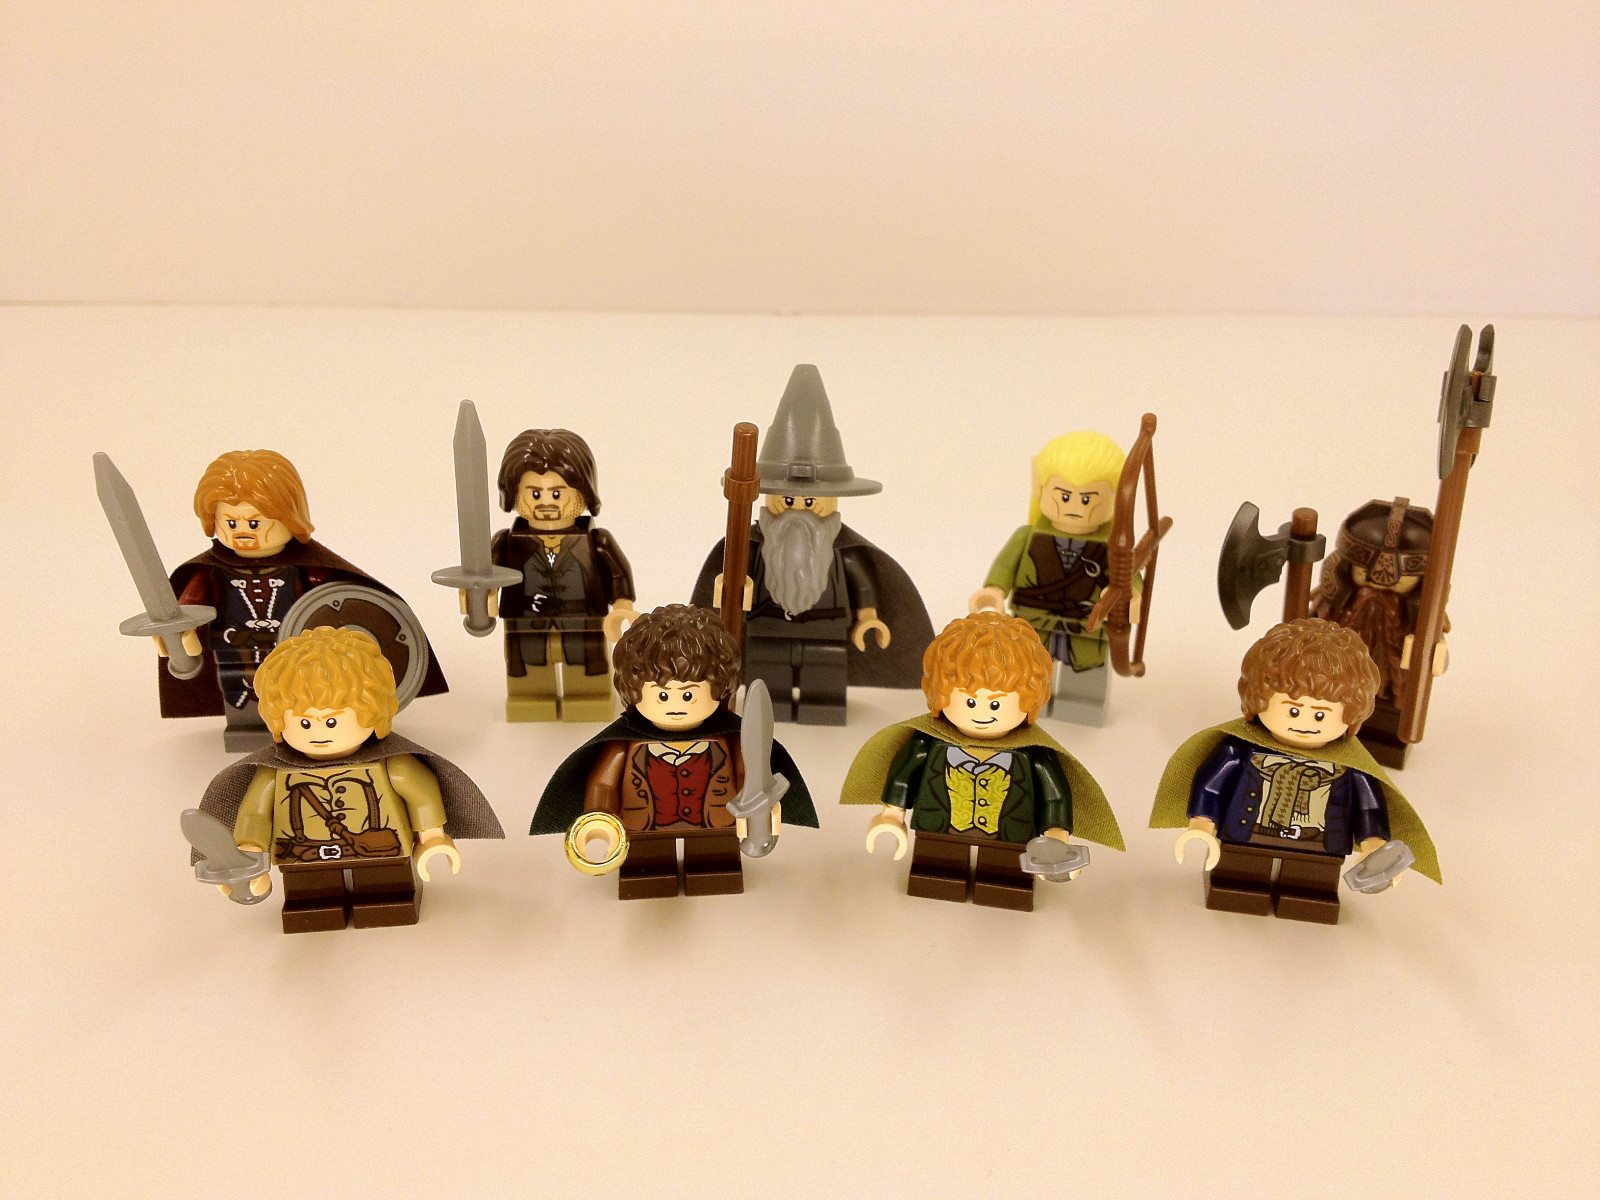 LEGO Lord of the Rings Game and Toys  : legofellowship from skillpointstation.com size 1600 x 1200 jpeg 415kB